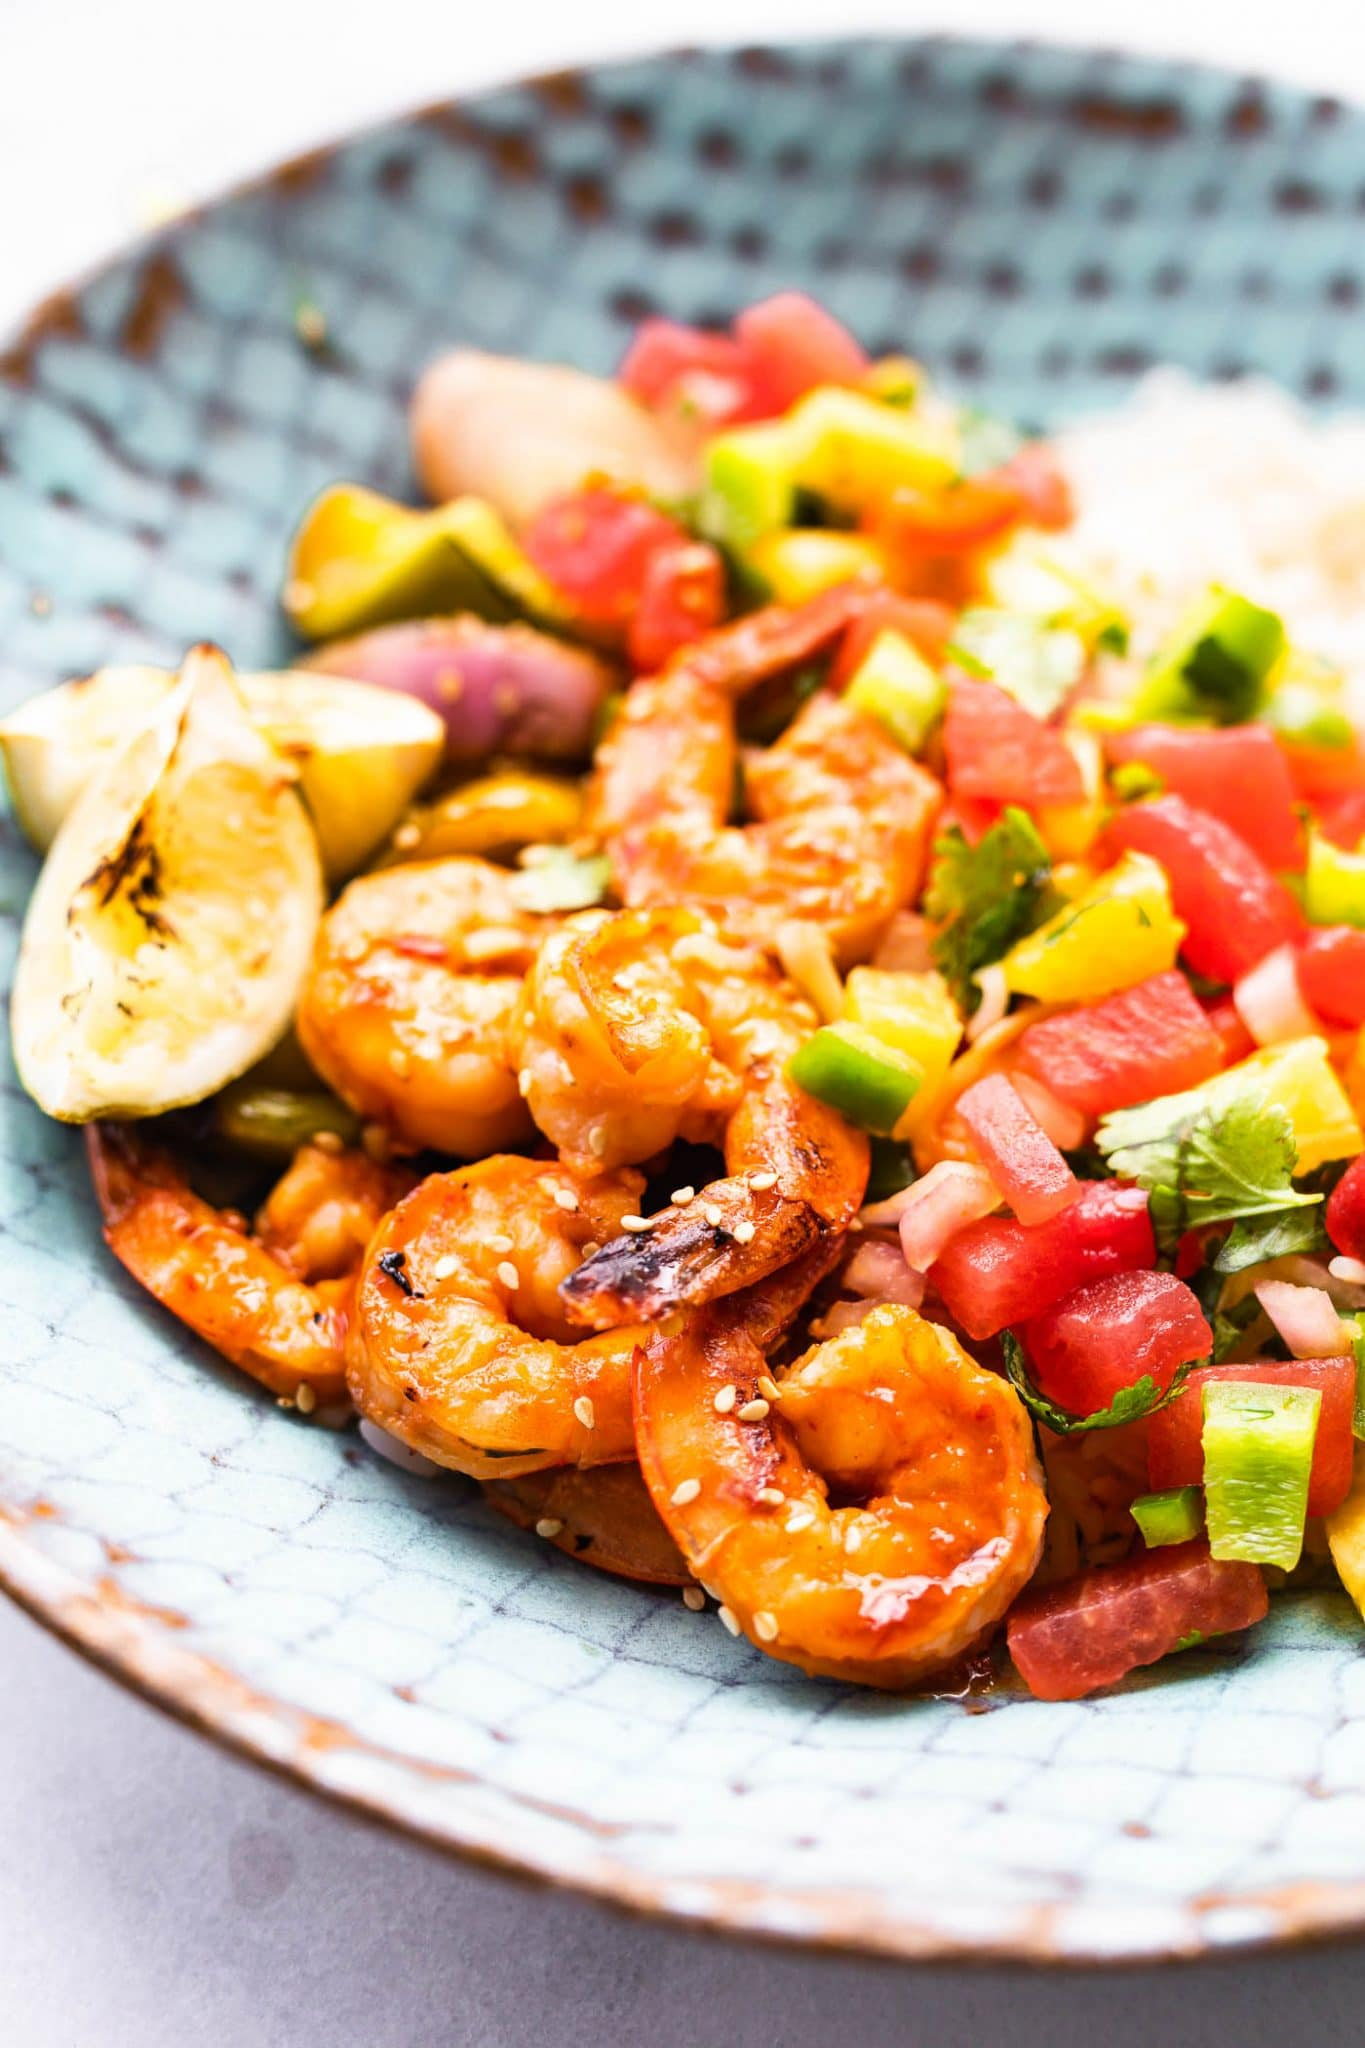 Close up image of watermelon salsa plated with broiled shrimp and rice.